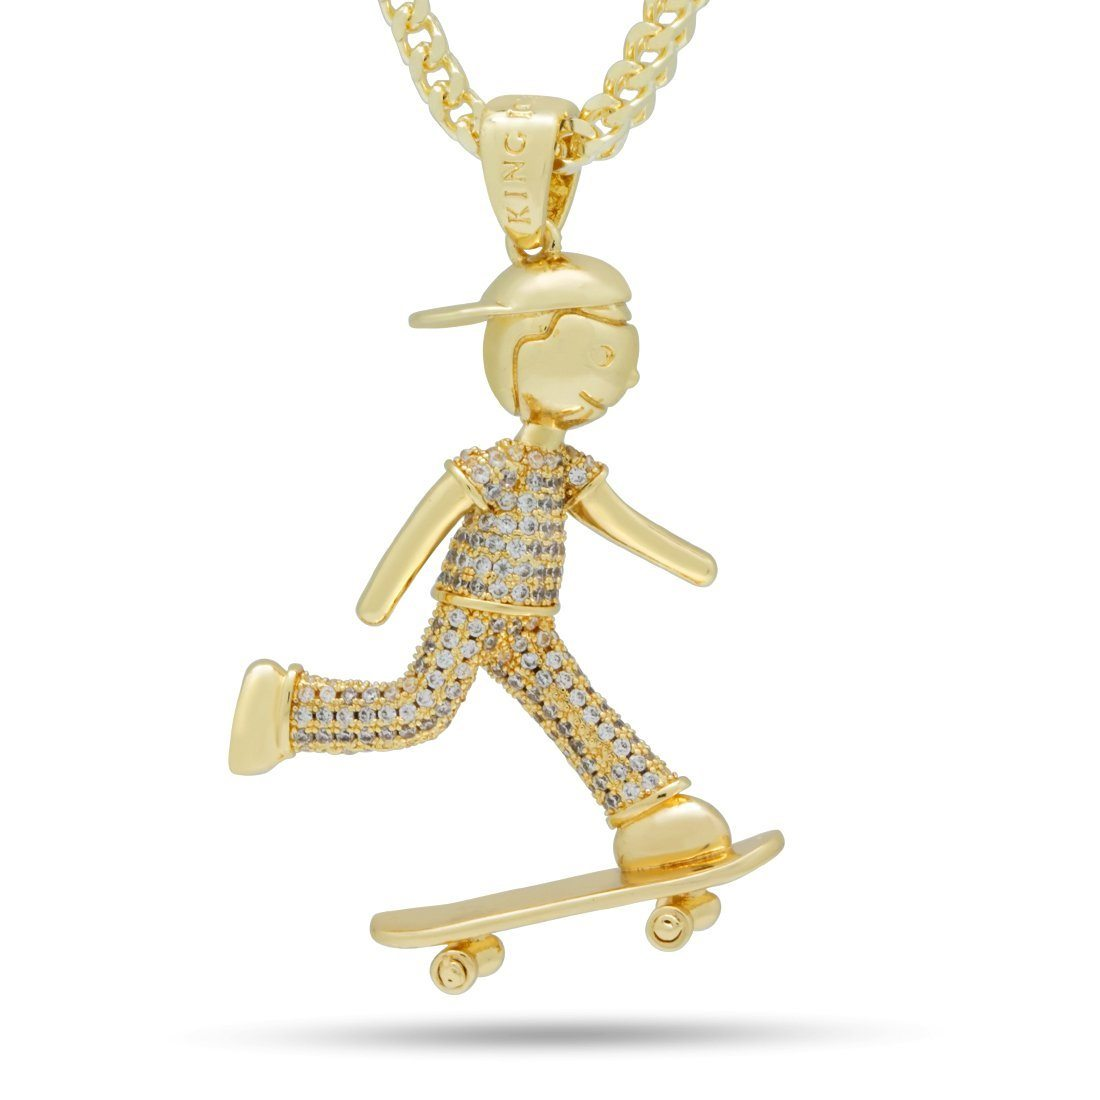 Image of The Skate Life Necklace